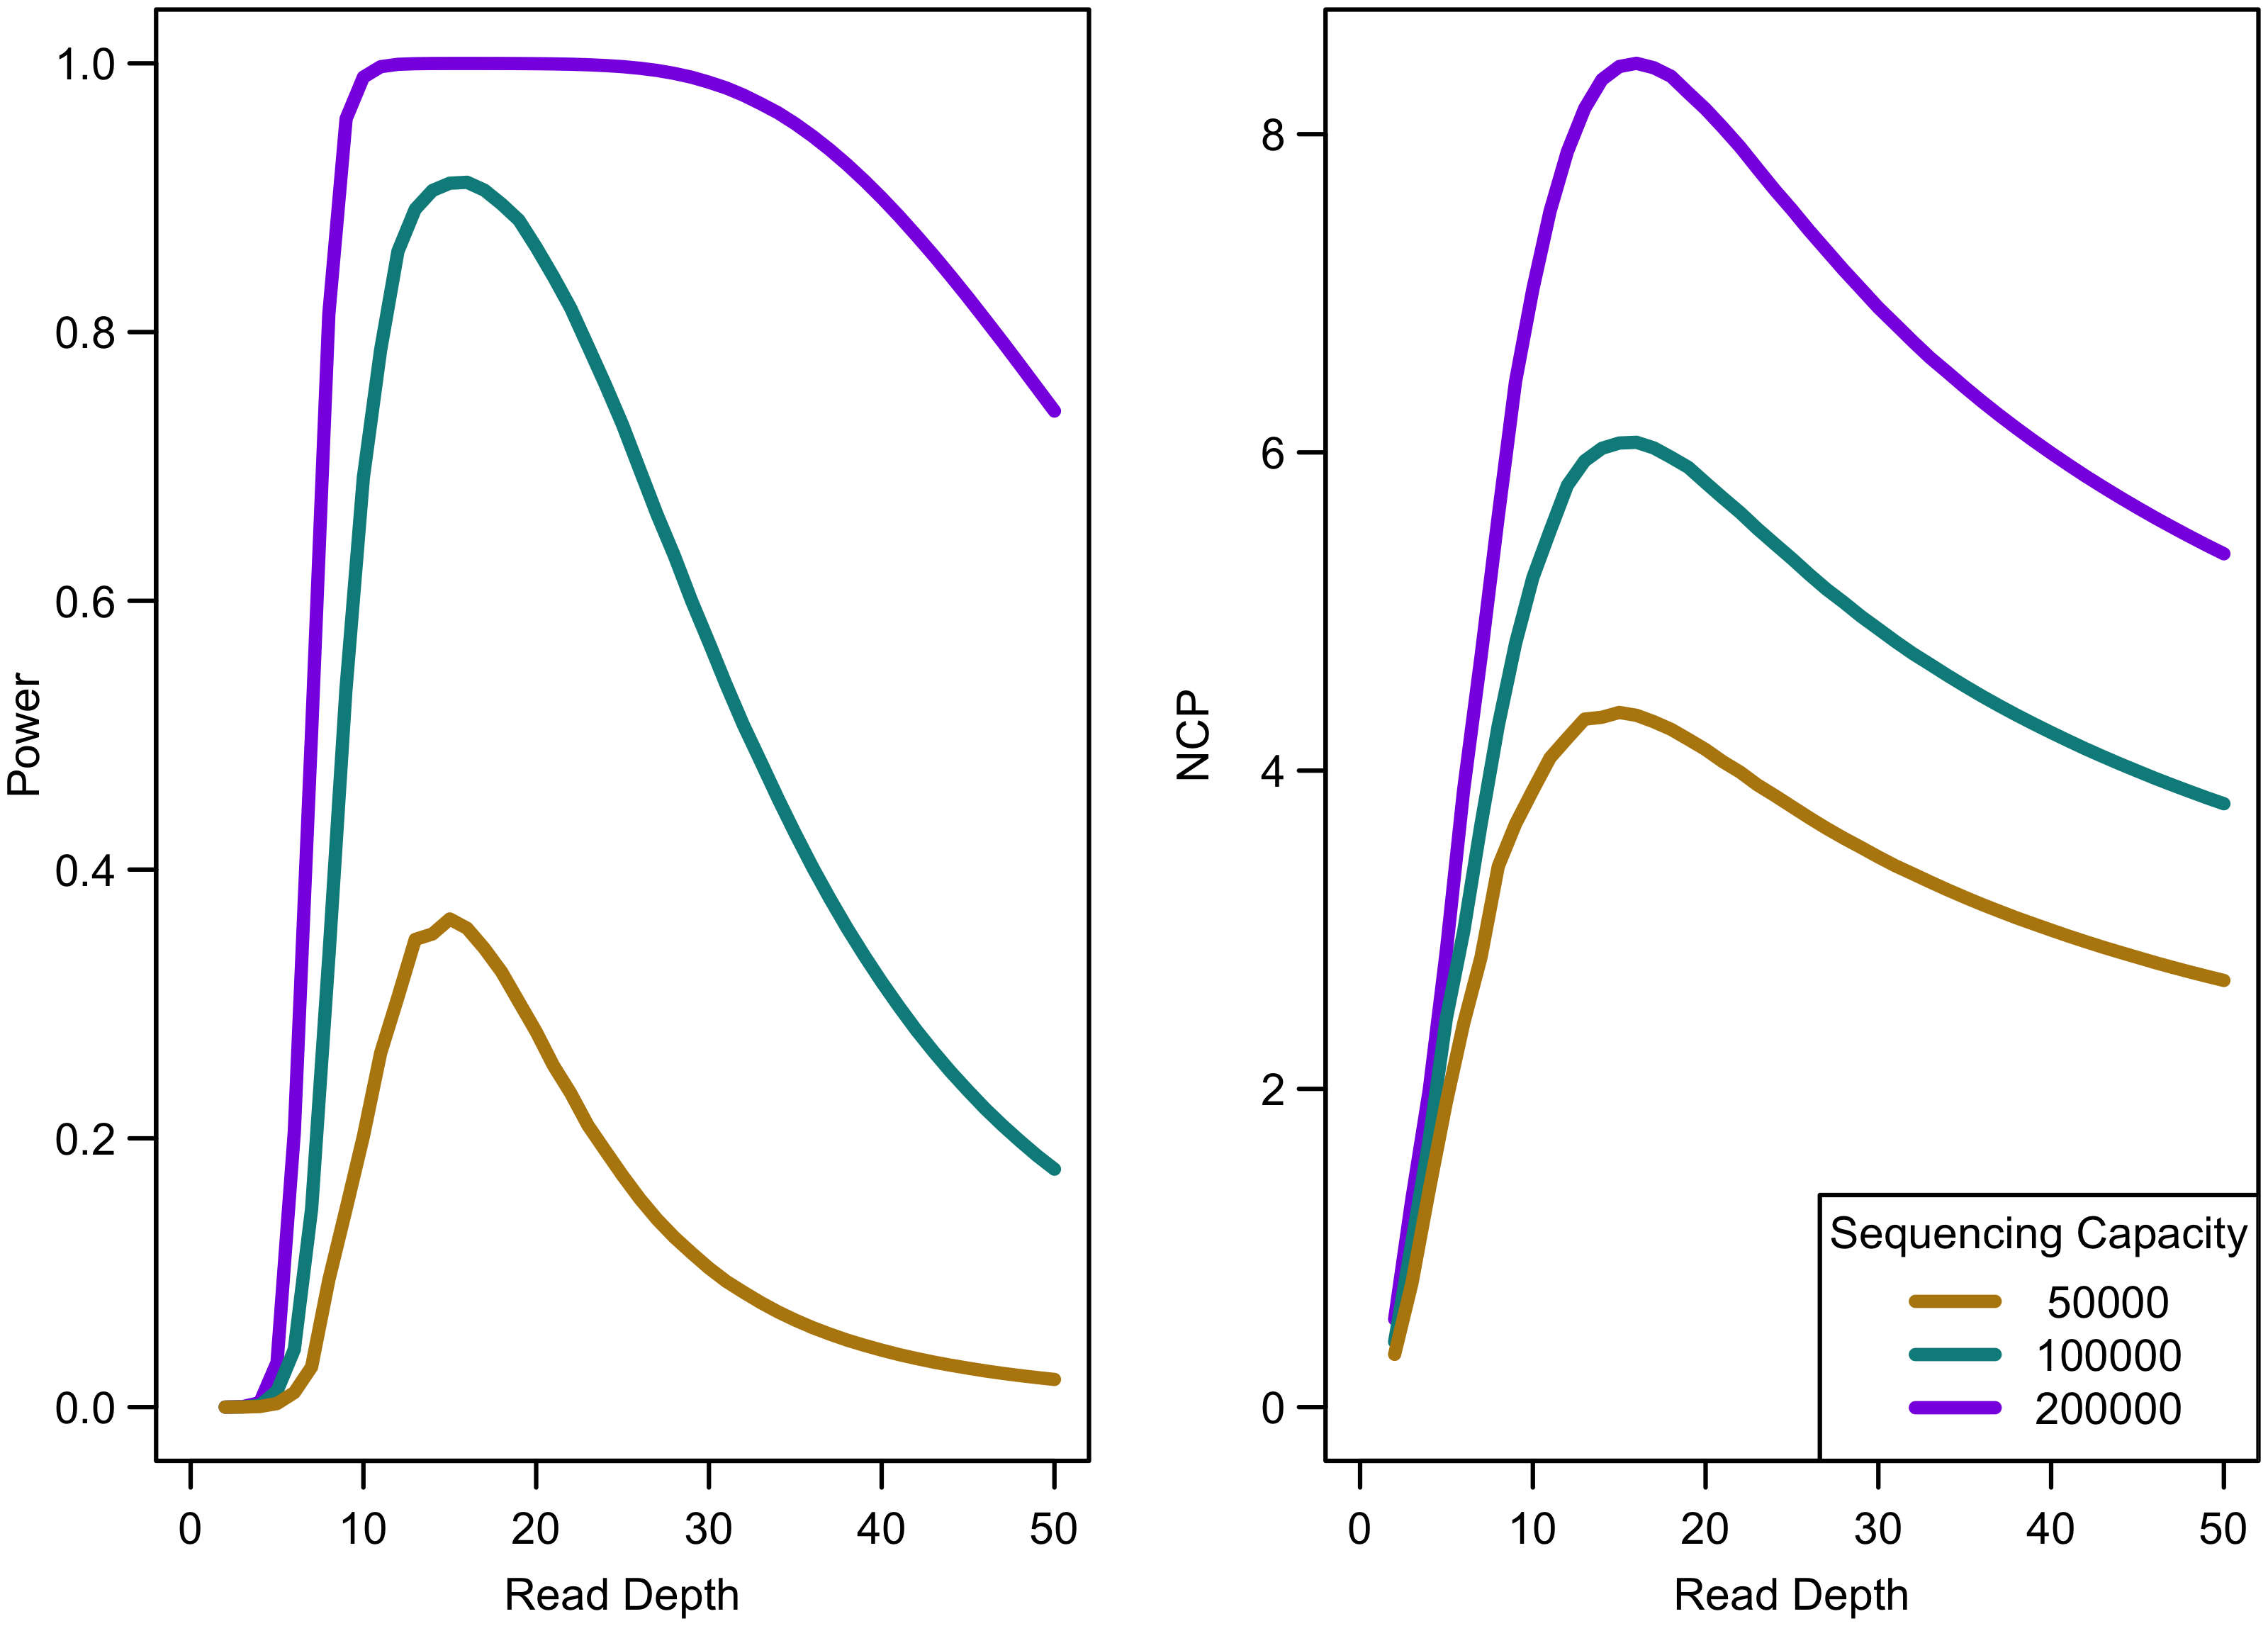 Association study power and NCP by read depth for constant different sequencing capacities.